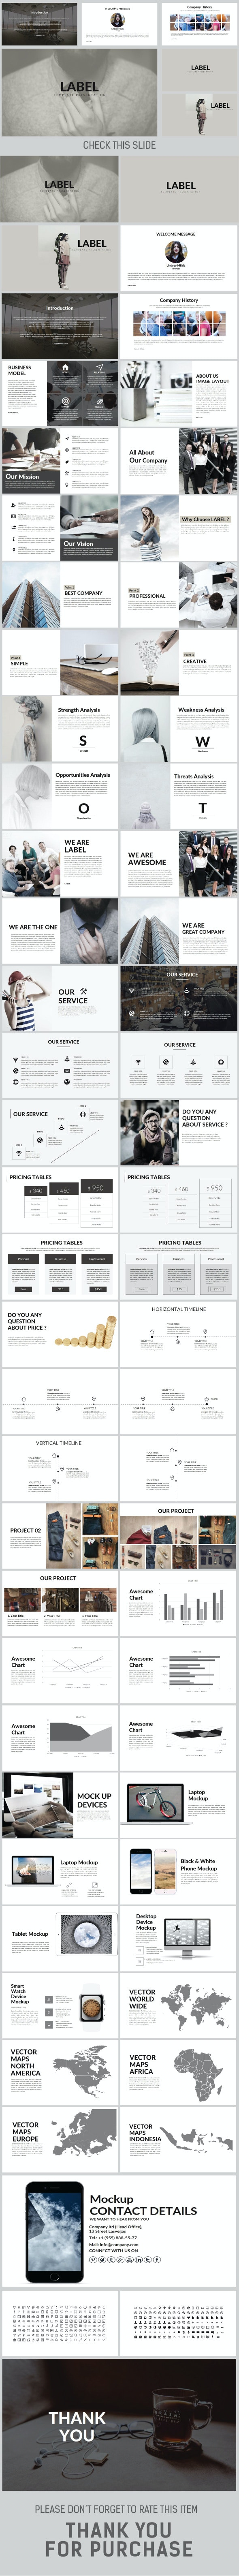 LABEL Keynote Template - Creative Keynote Templates